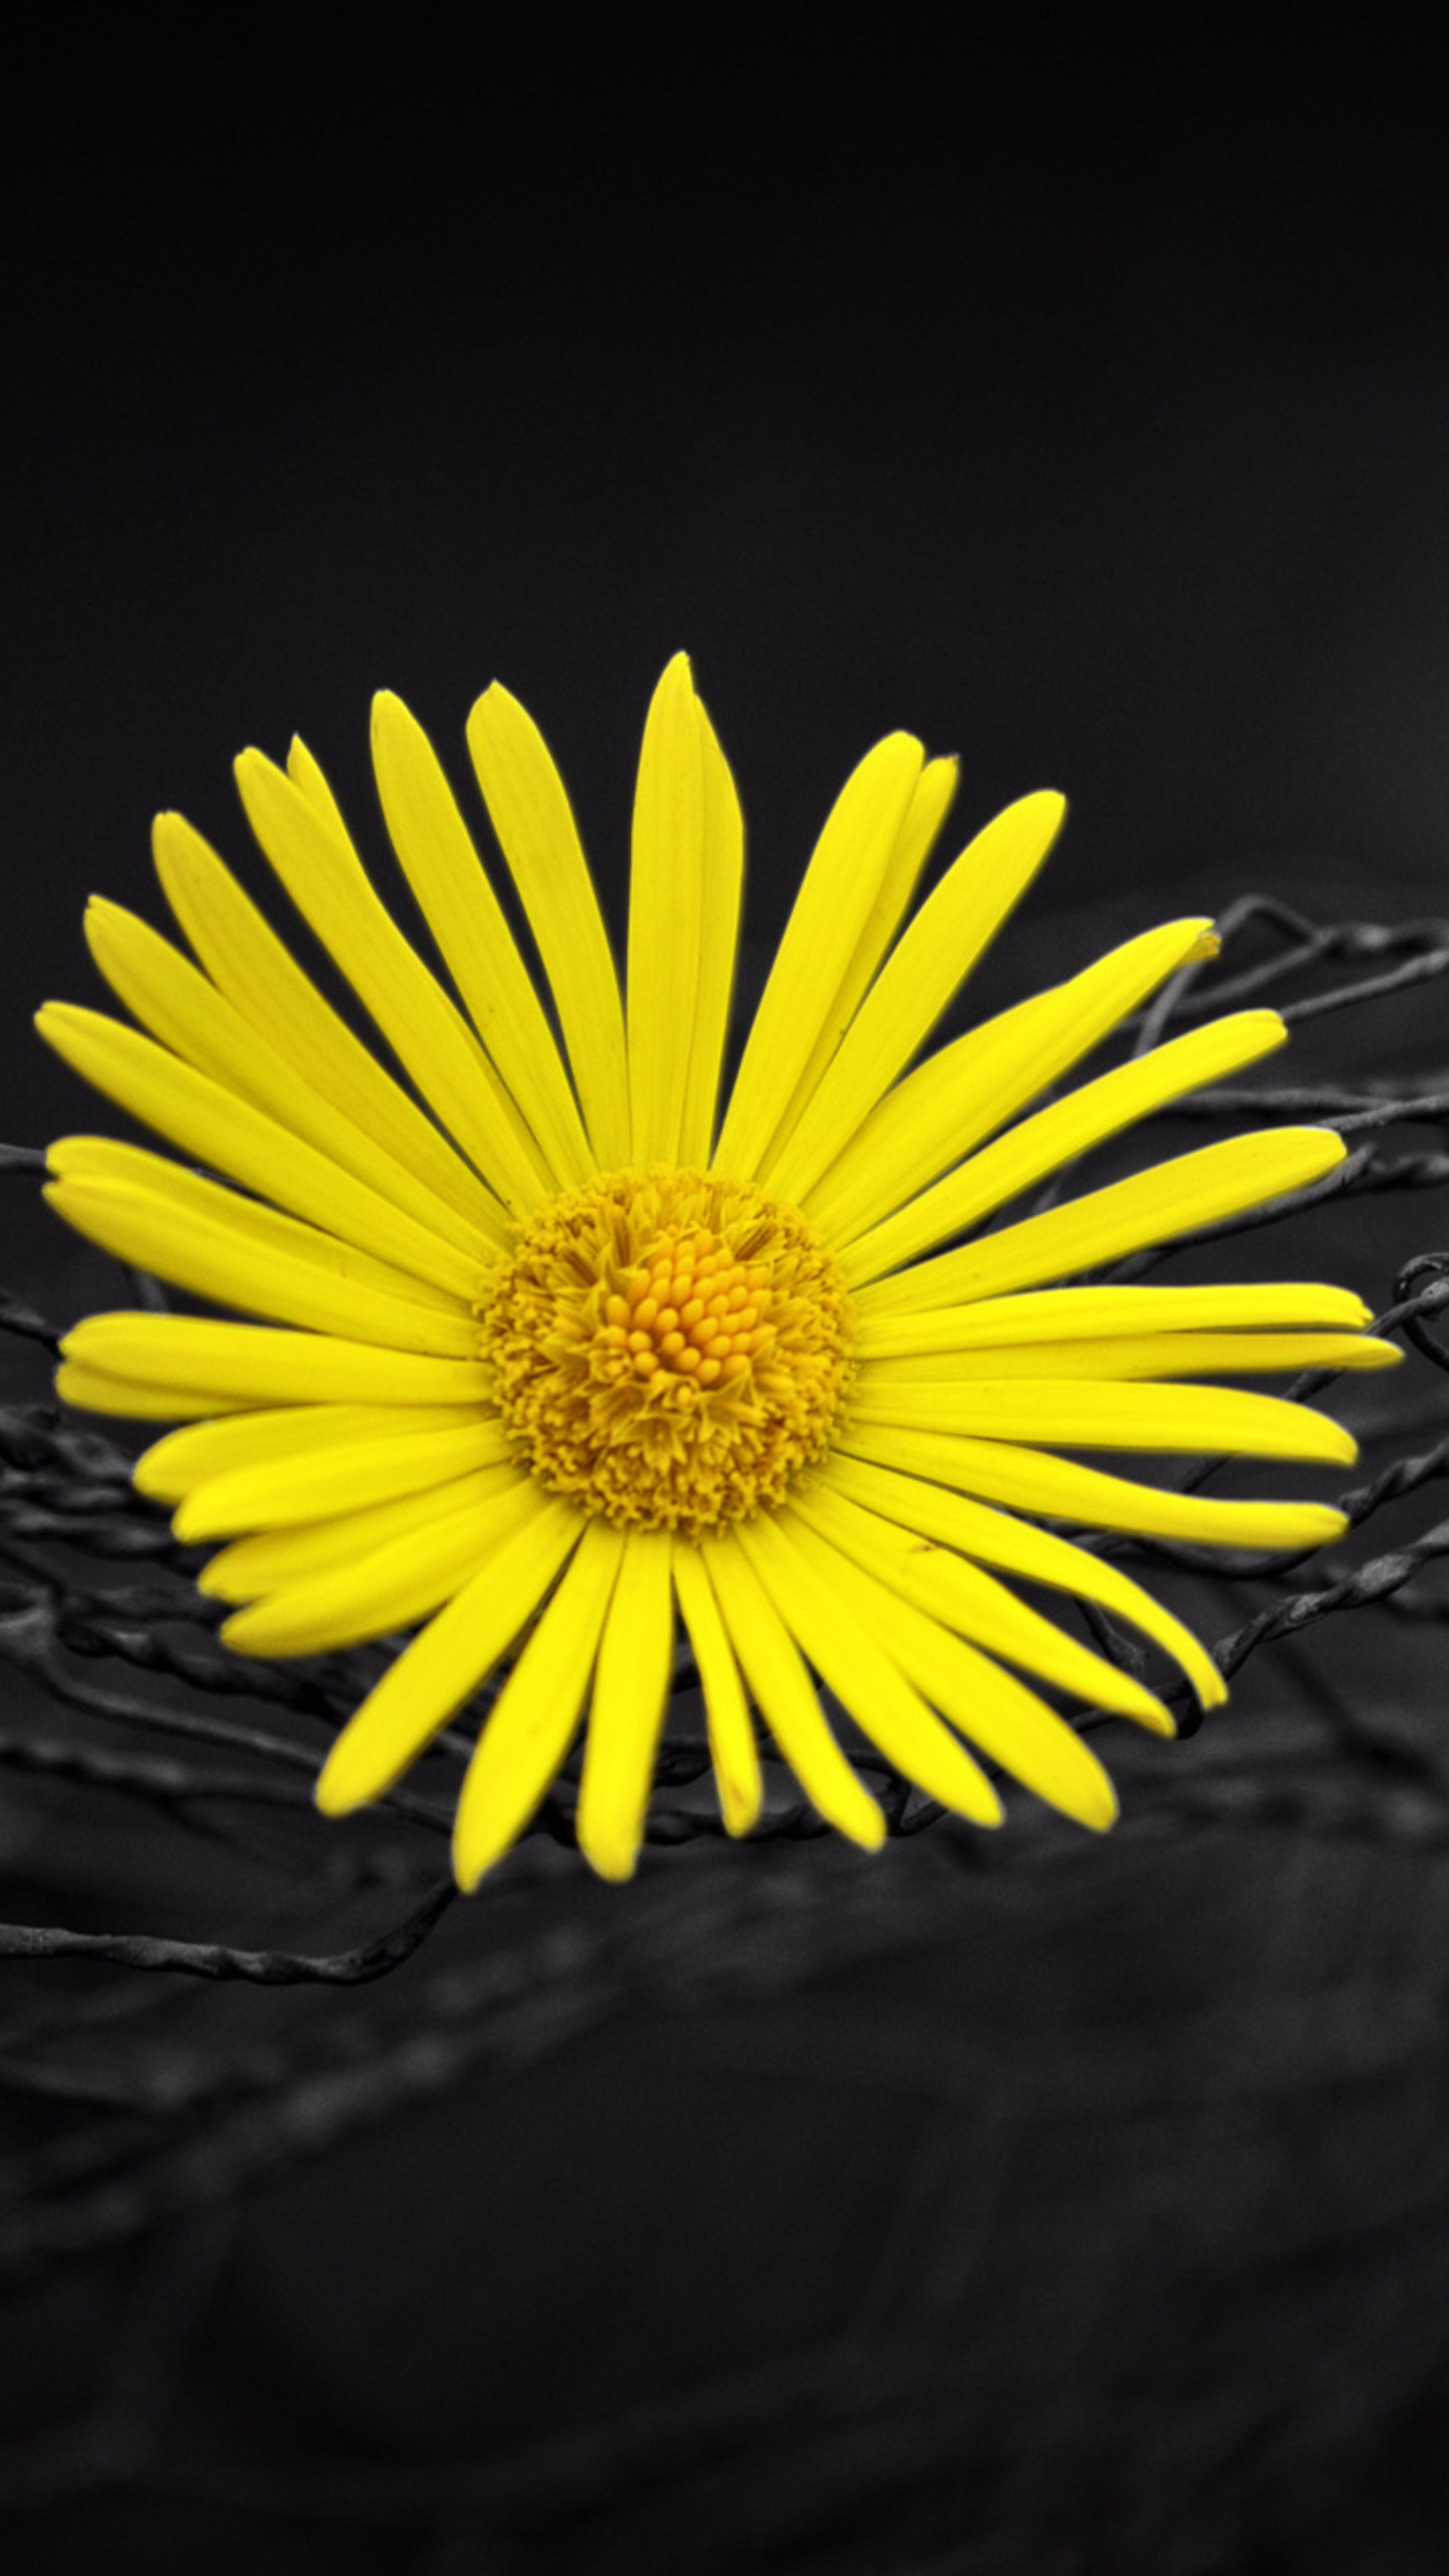 yellow-flower-fence-dark-black-background-ex.jpg